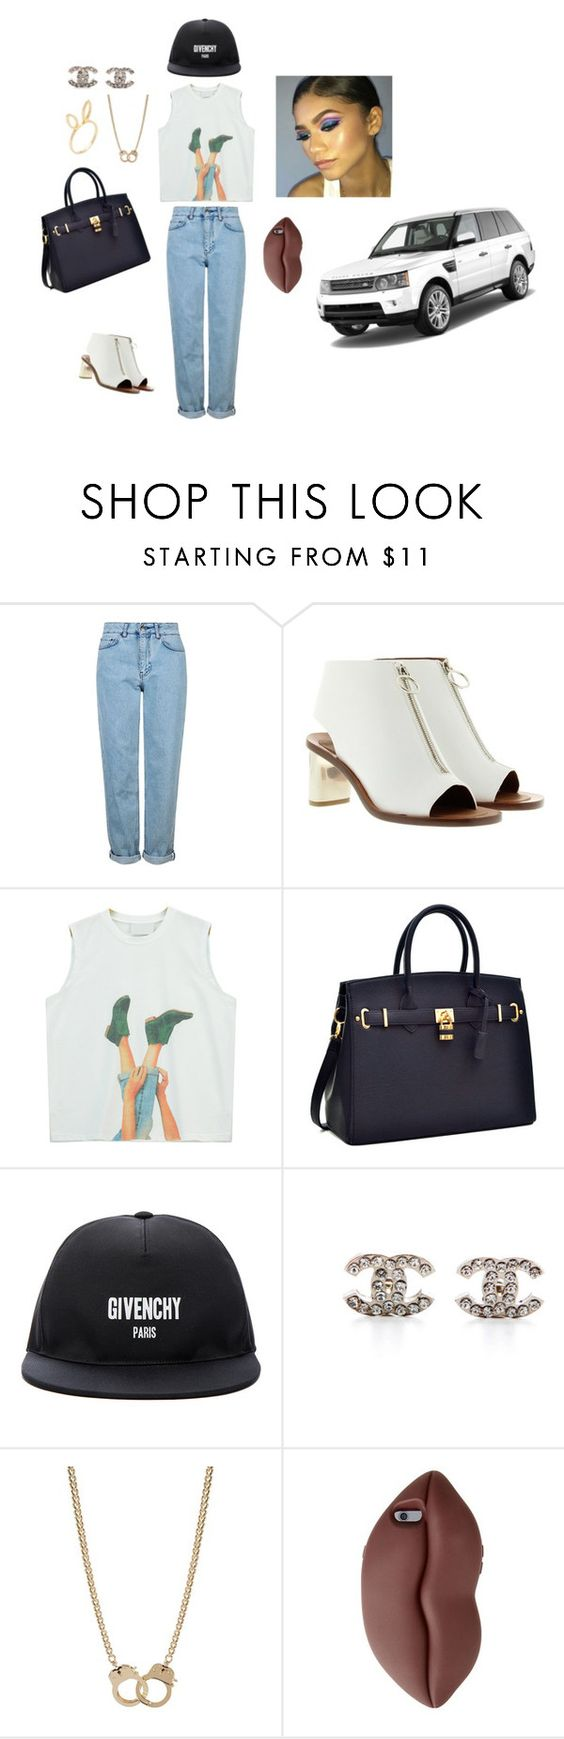 """""""dope  + cute"""" by mefo-2 ❤ liked on Polyvore featuring Topshop, CÉLINE, Chicnova Fashion, Givenchy, Chanel, Sugar NY, STELLA McCARTNEY and Jacquie Aiche"""